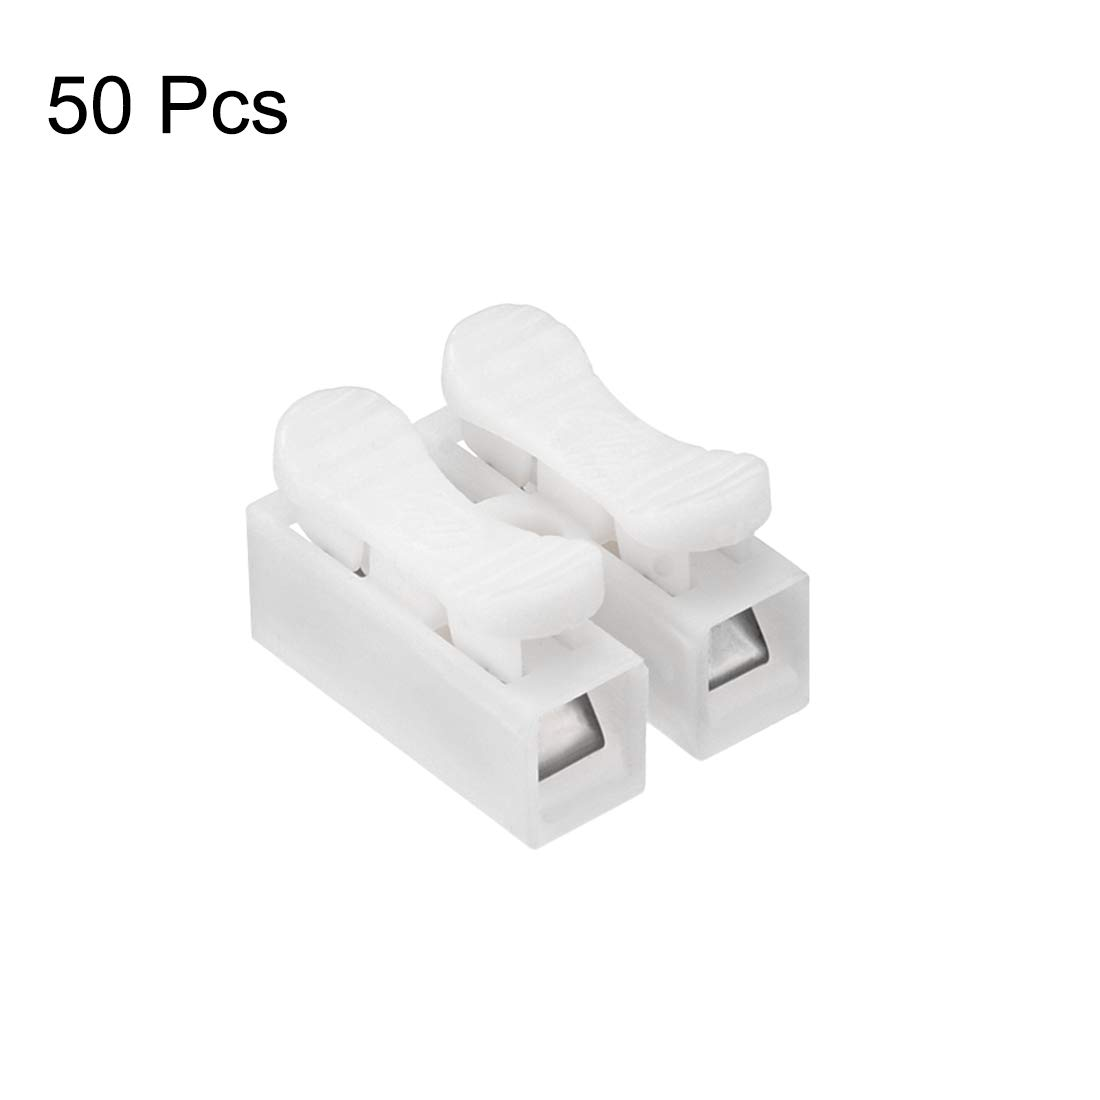 uxcell CH2 Spring Wire Connectors Quick Cable Connector Press Type Terminal Barrier Block 30pcs